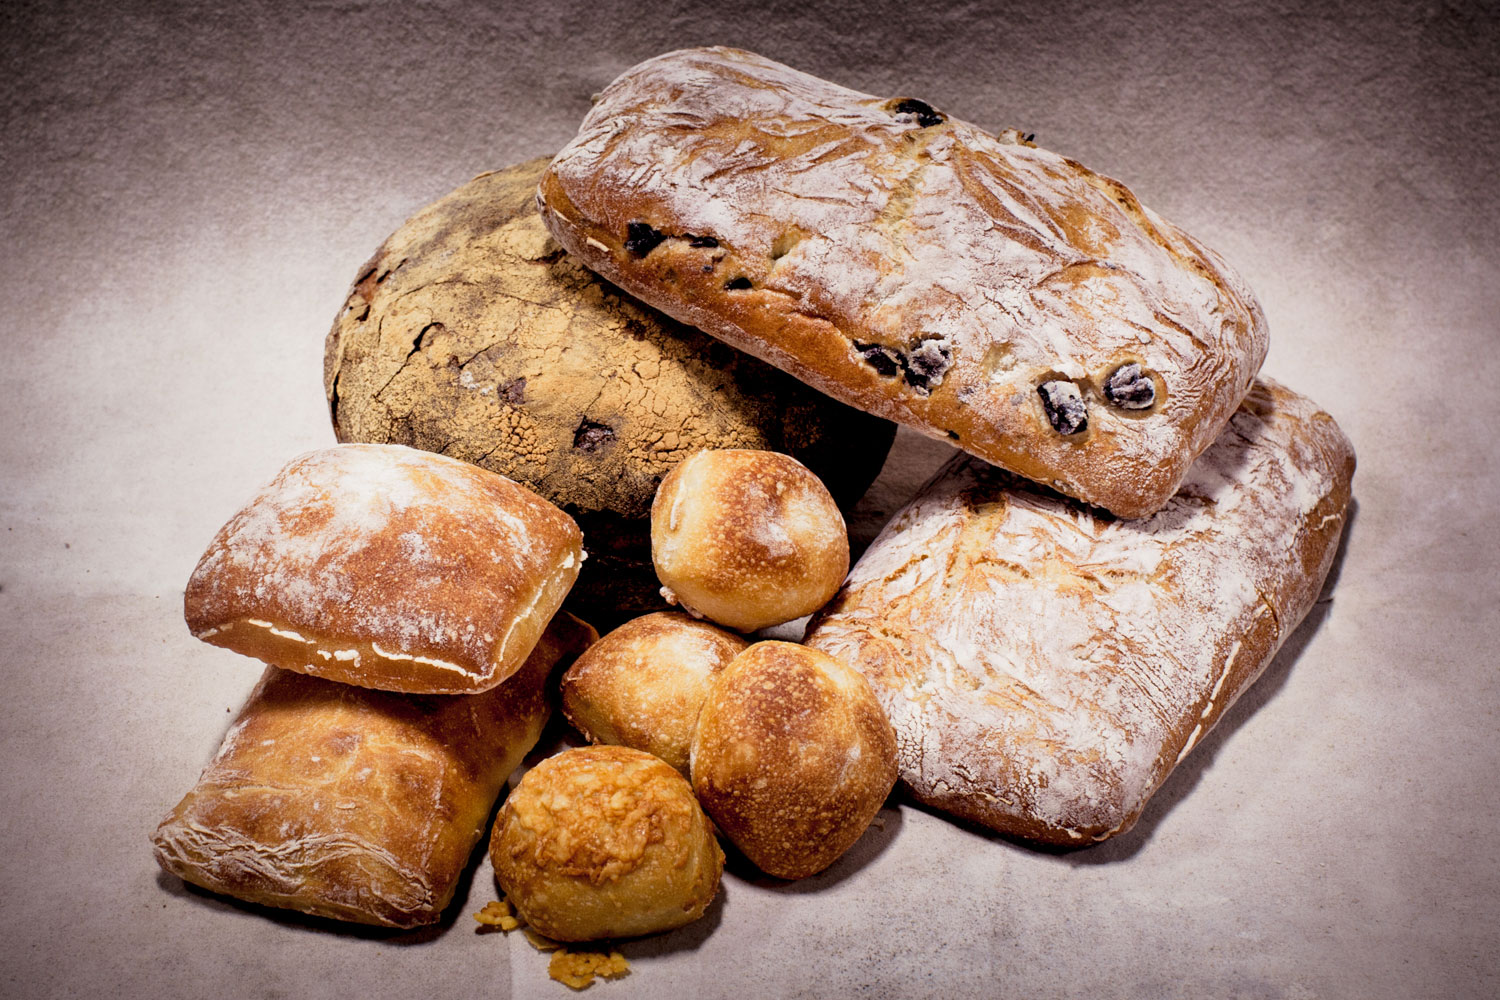 best wholesale bread distributor in connecticut hartford